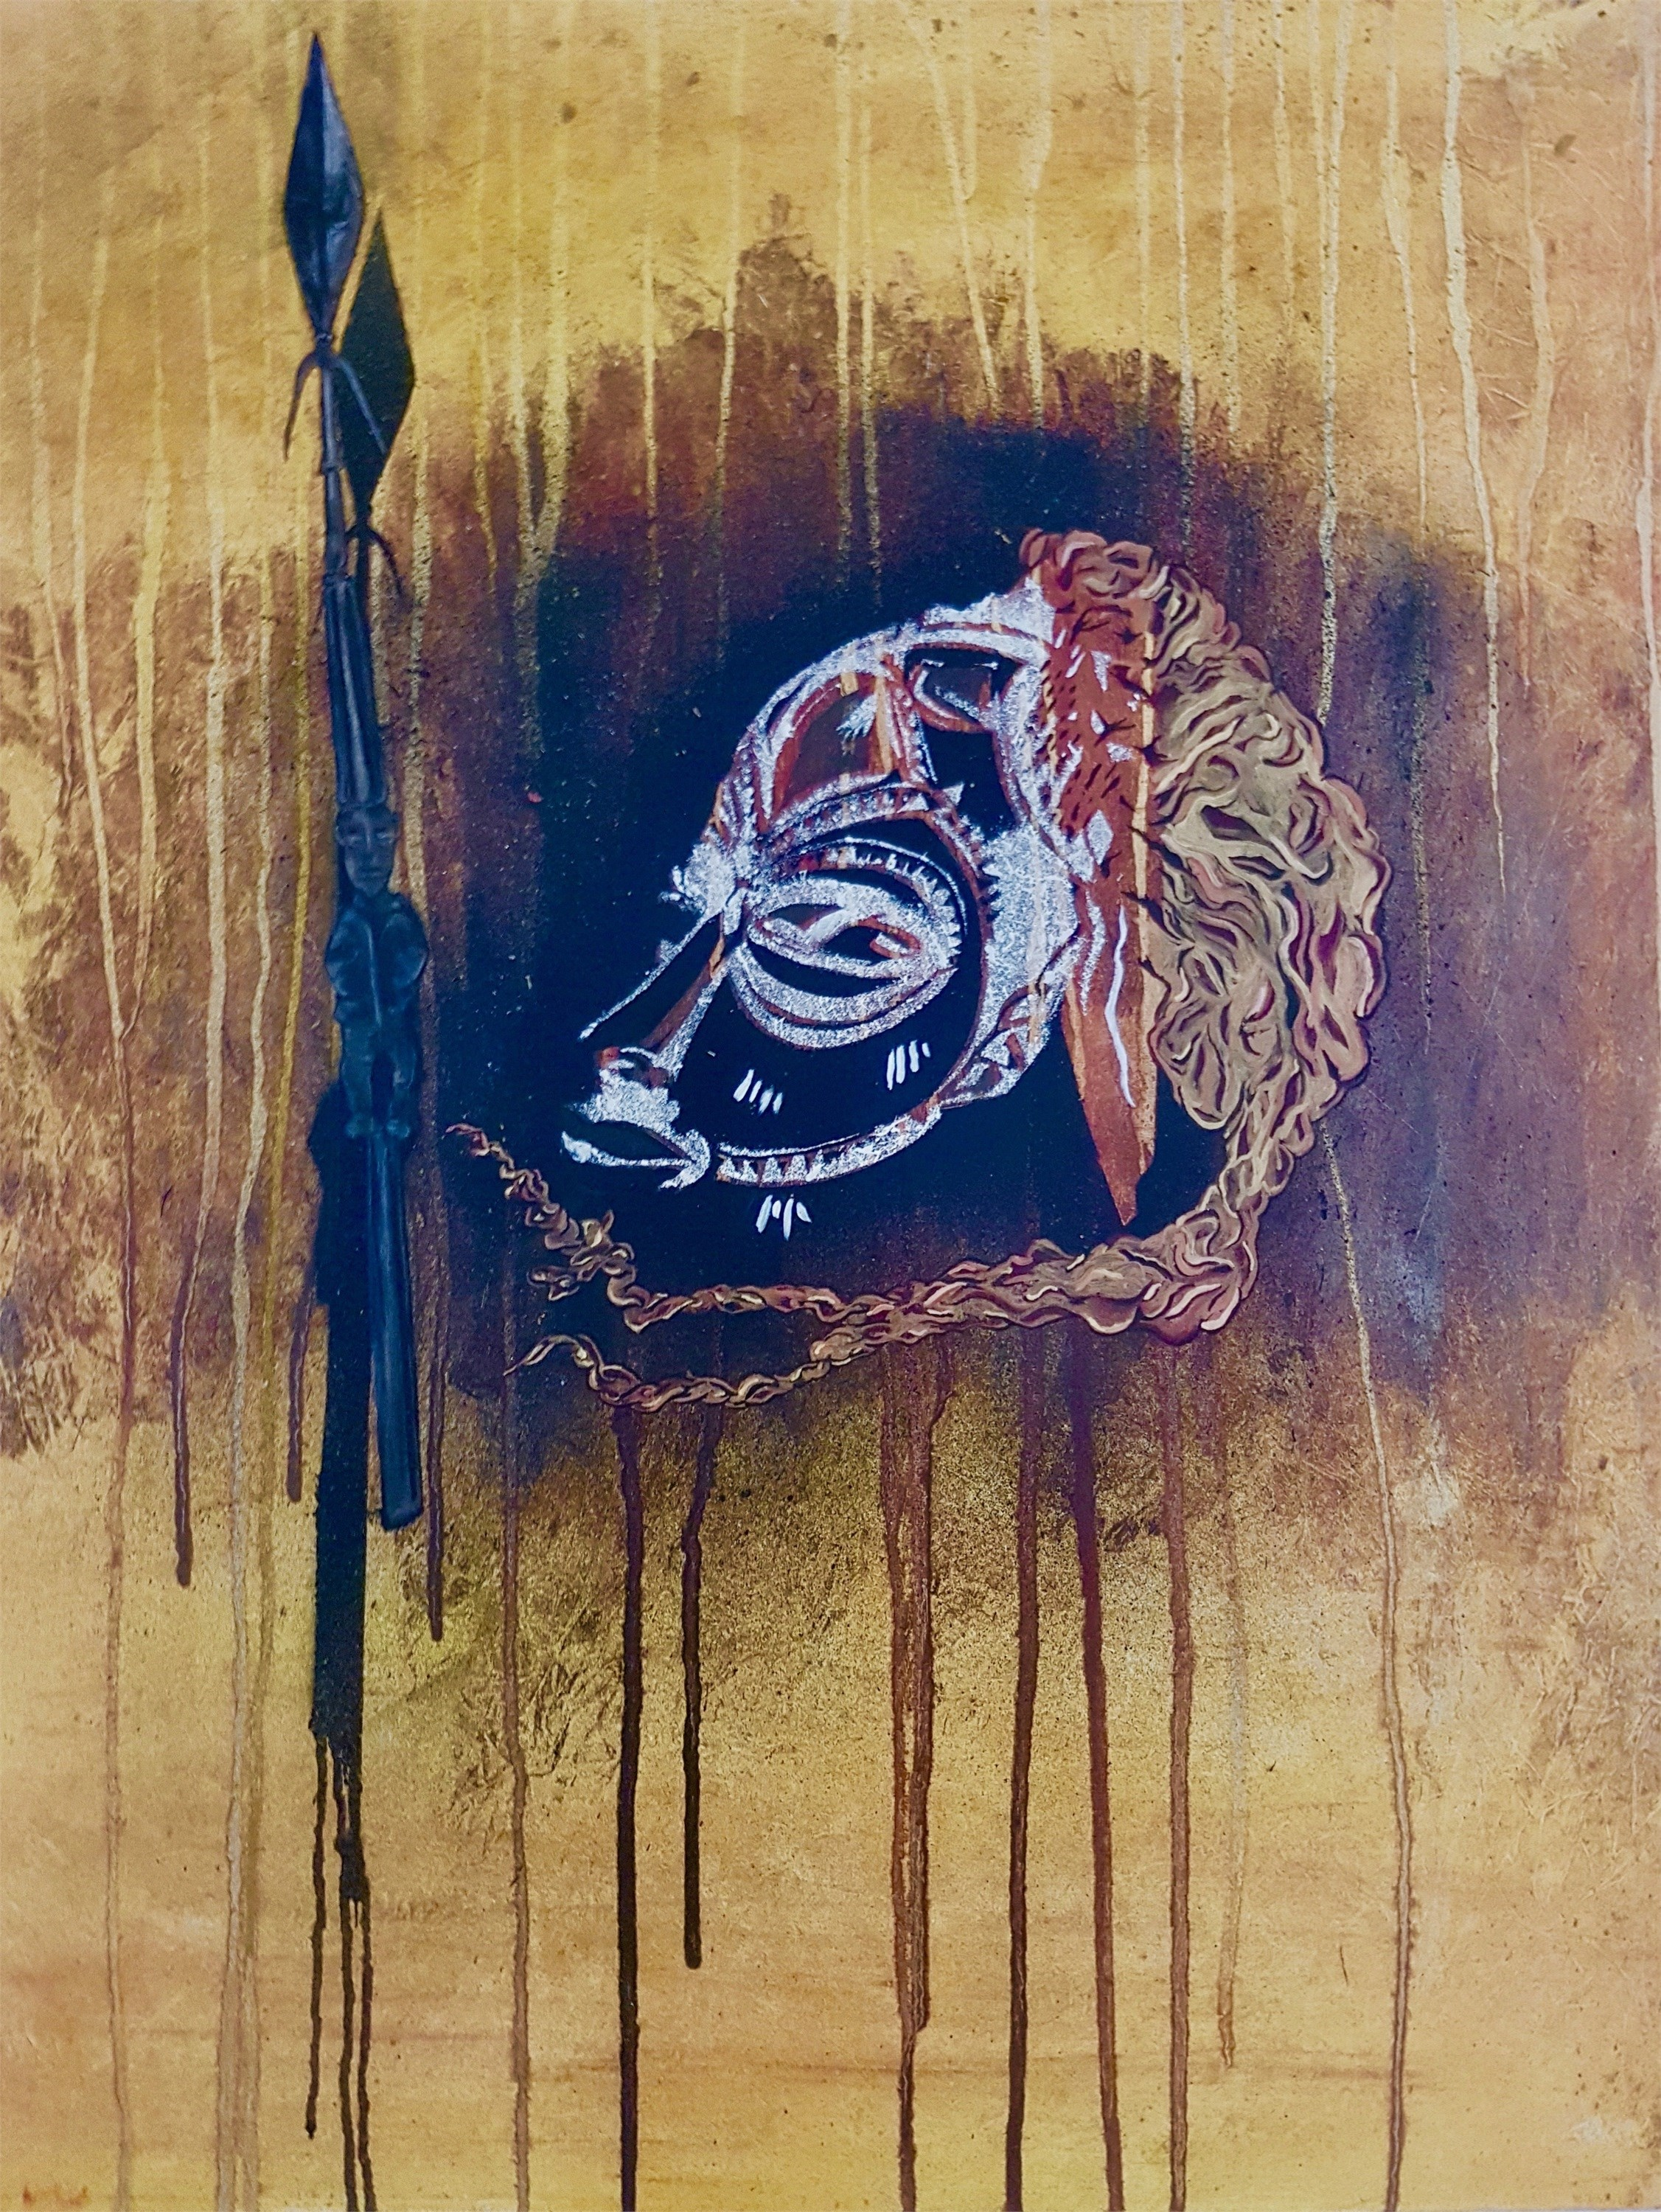 Chokwe Mask (Angola), original Abstract Canvas Painting by Andrea Pinto (Art Sauvage)